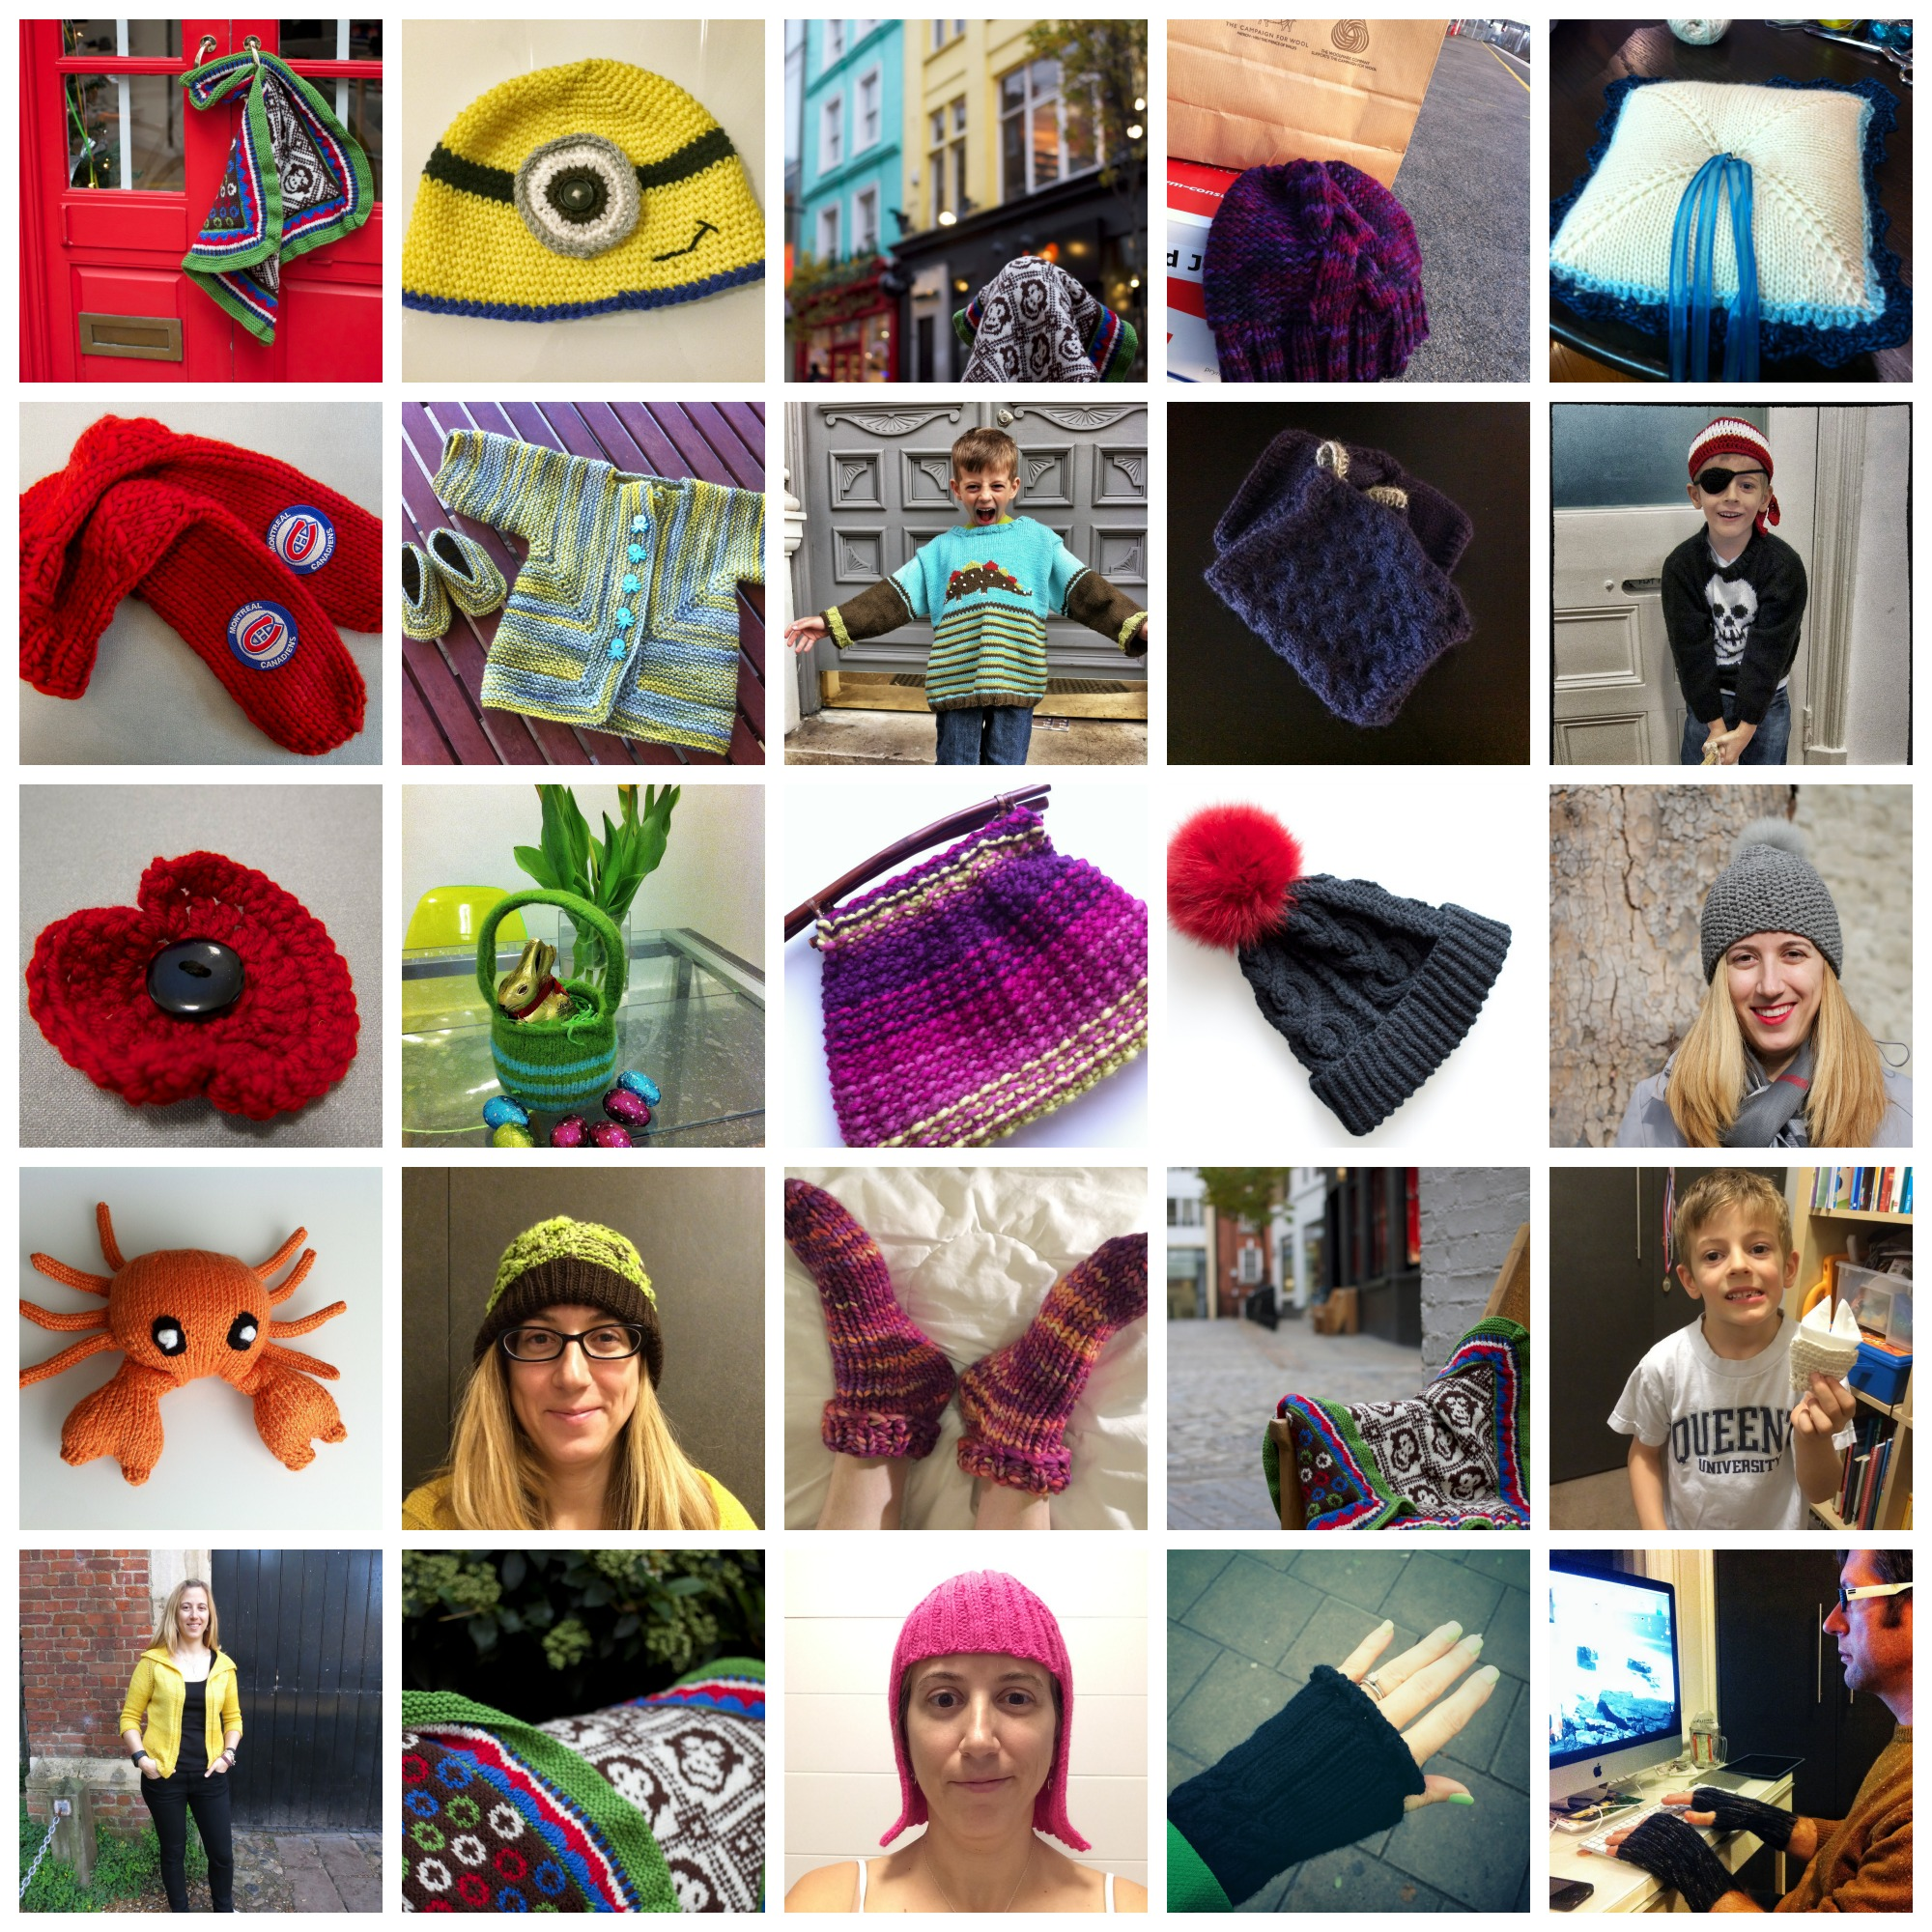 2013 by the numbers: 27 projects (including 3 UFOs) and 6,932 yards knit/crocheted.